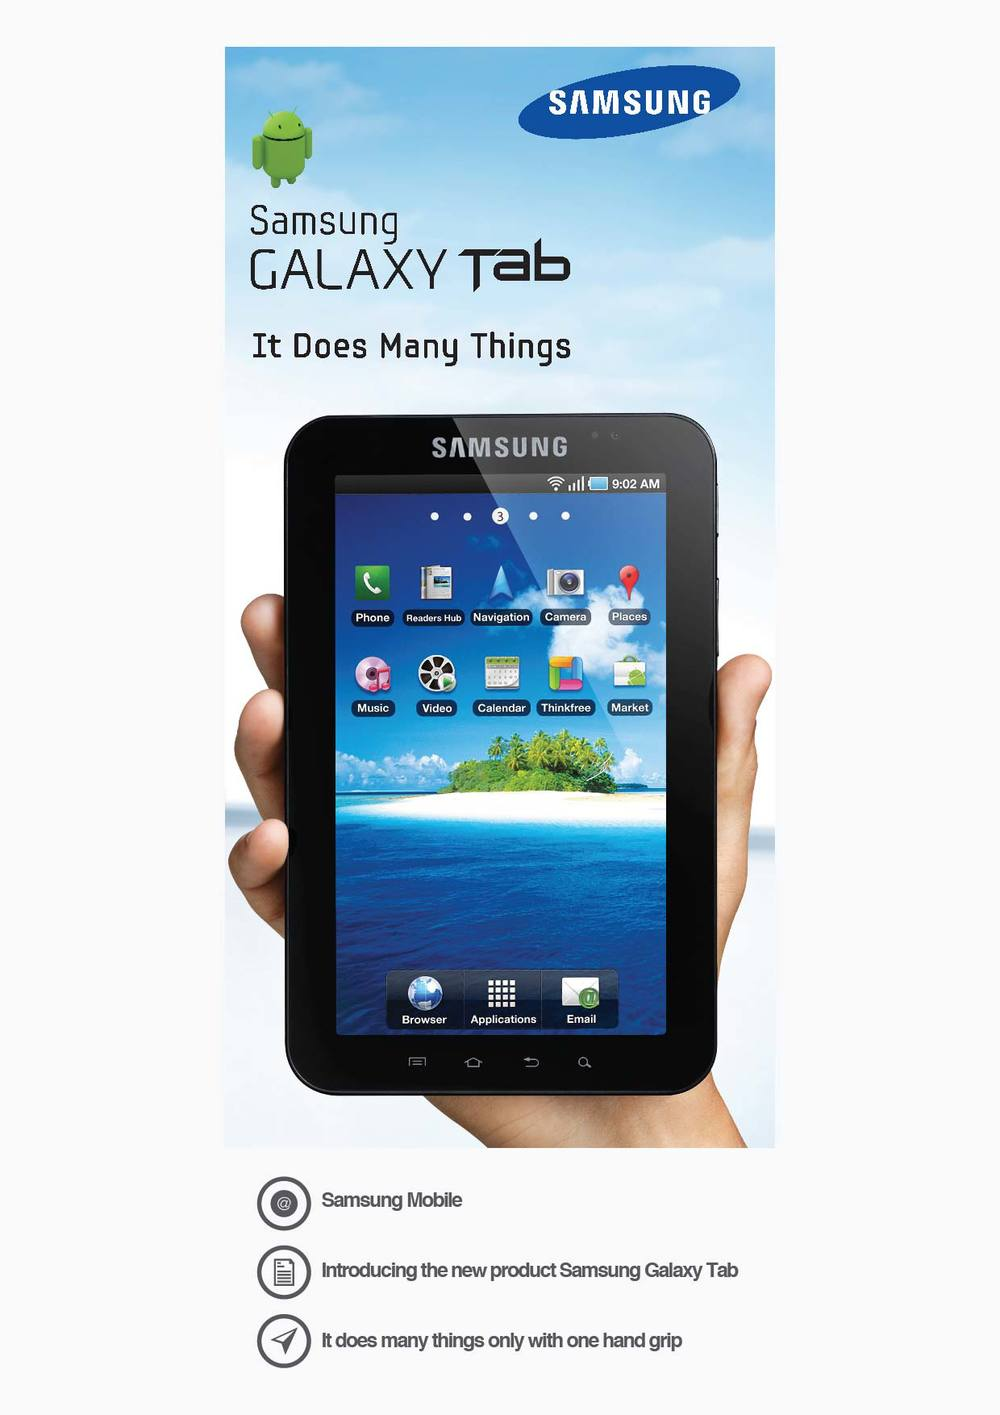 Samsung Mobile Introducing the new product Samsung Galaxy Tab